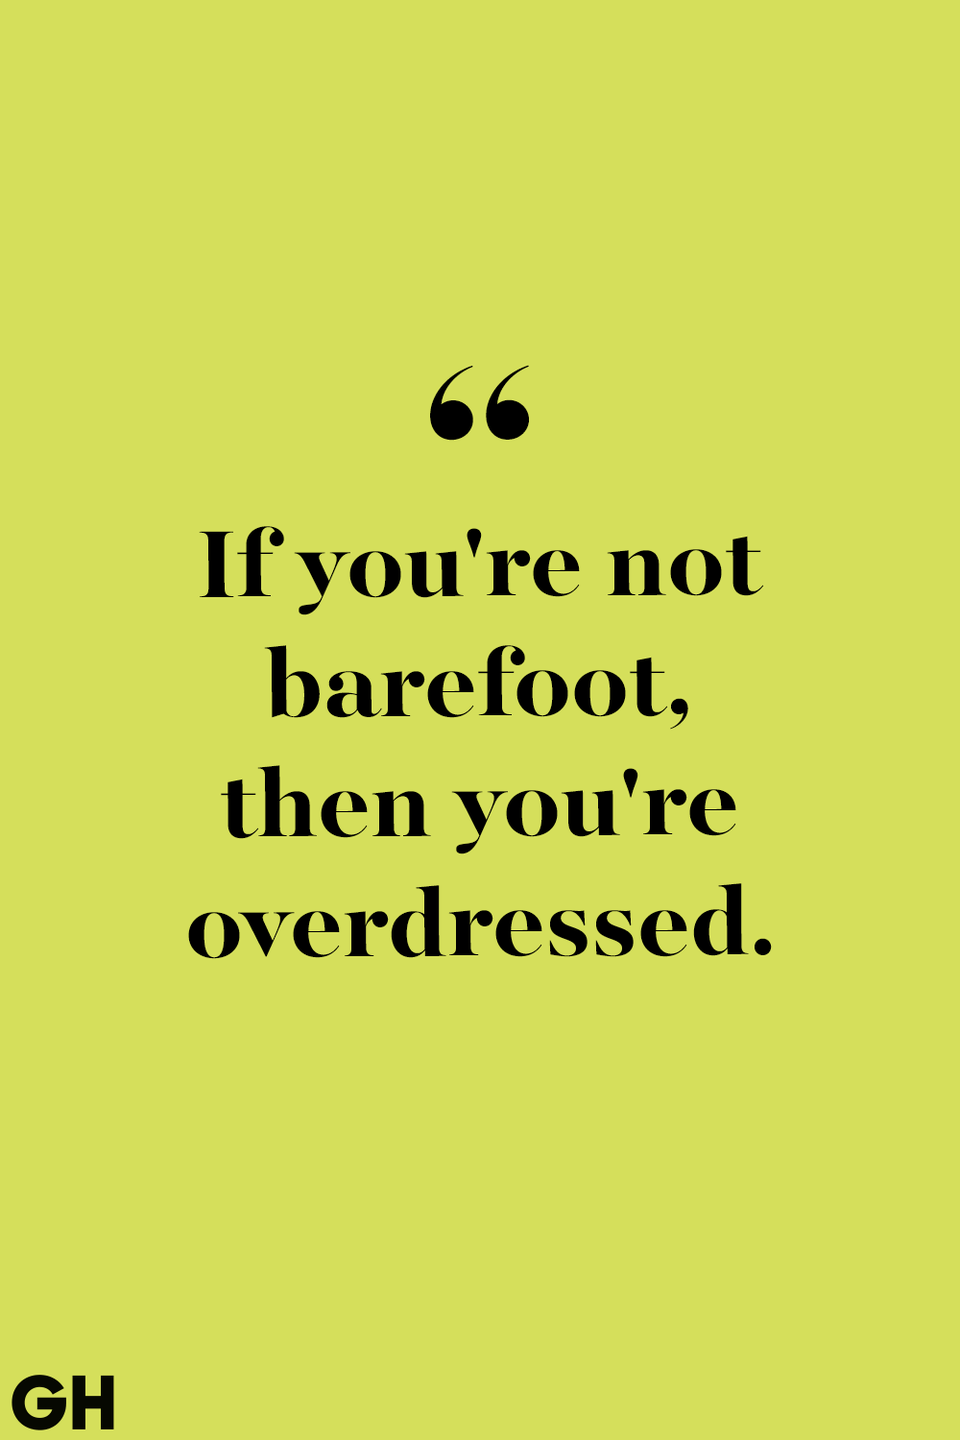 <p>If you're not barefoot, then you're overdressed.</p>